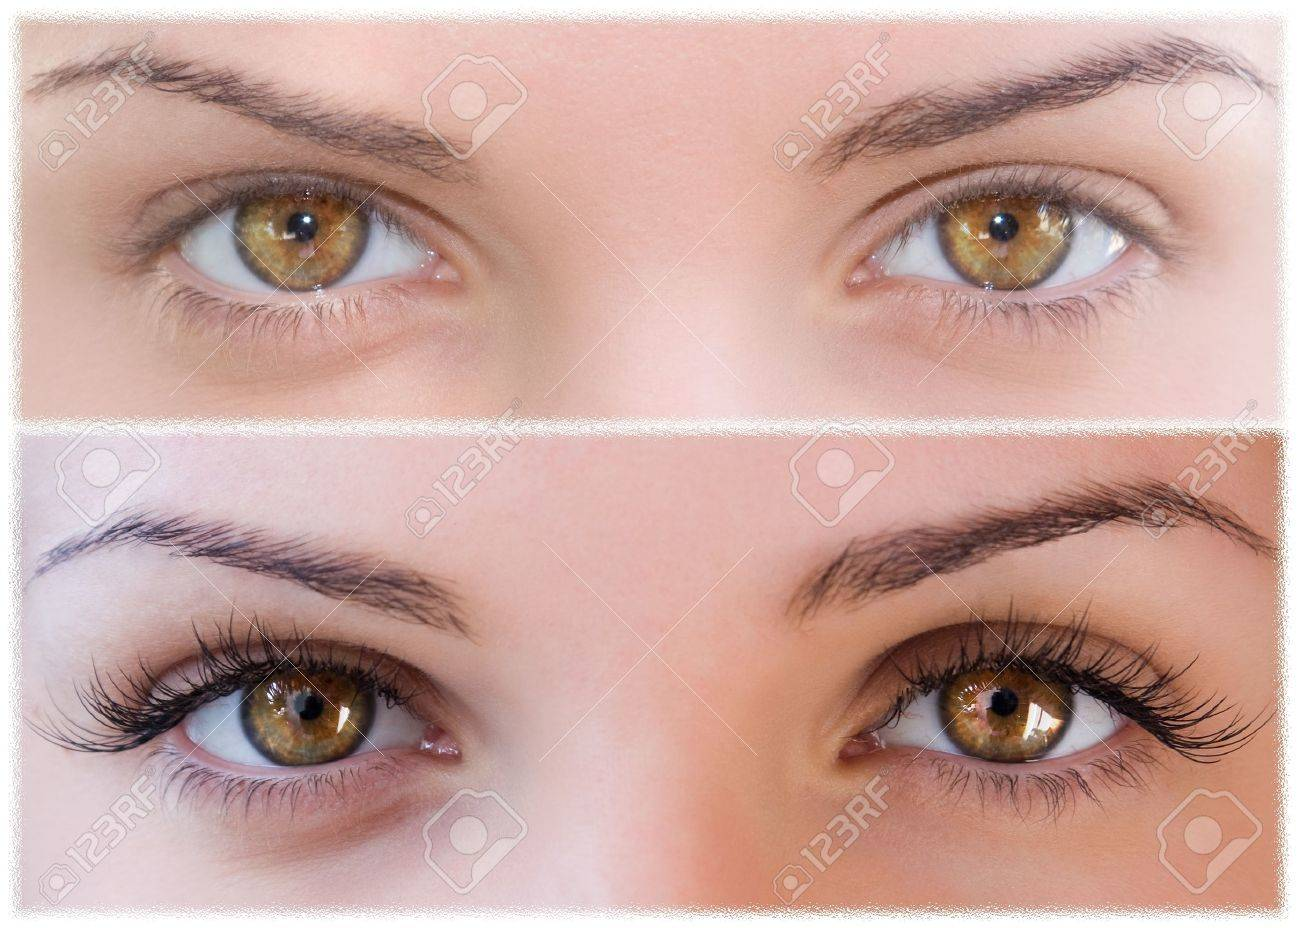 Close Beautiful Eyes With Natural Eyelashes To And False Eyelashes